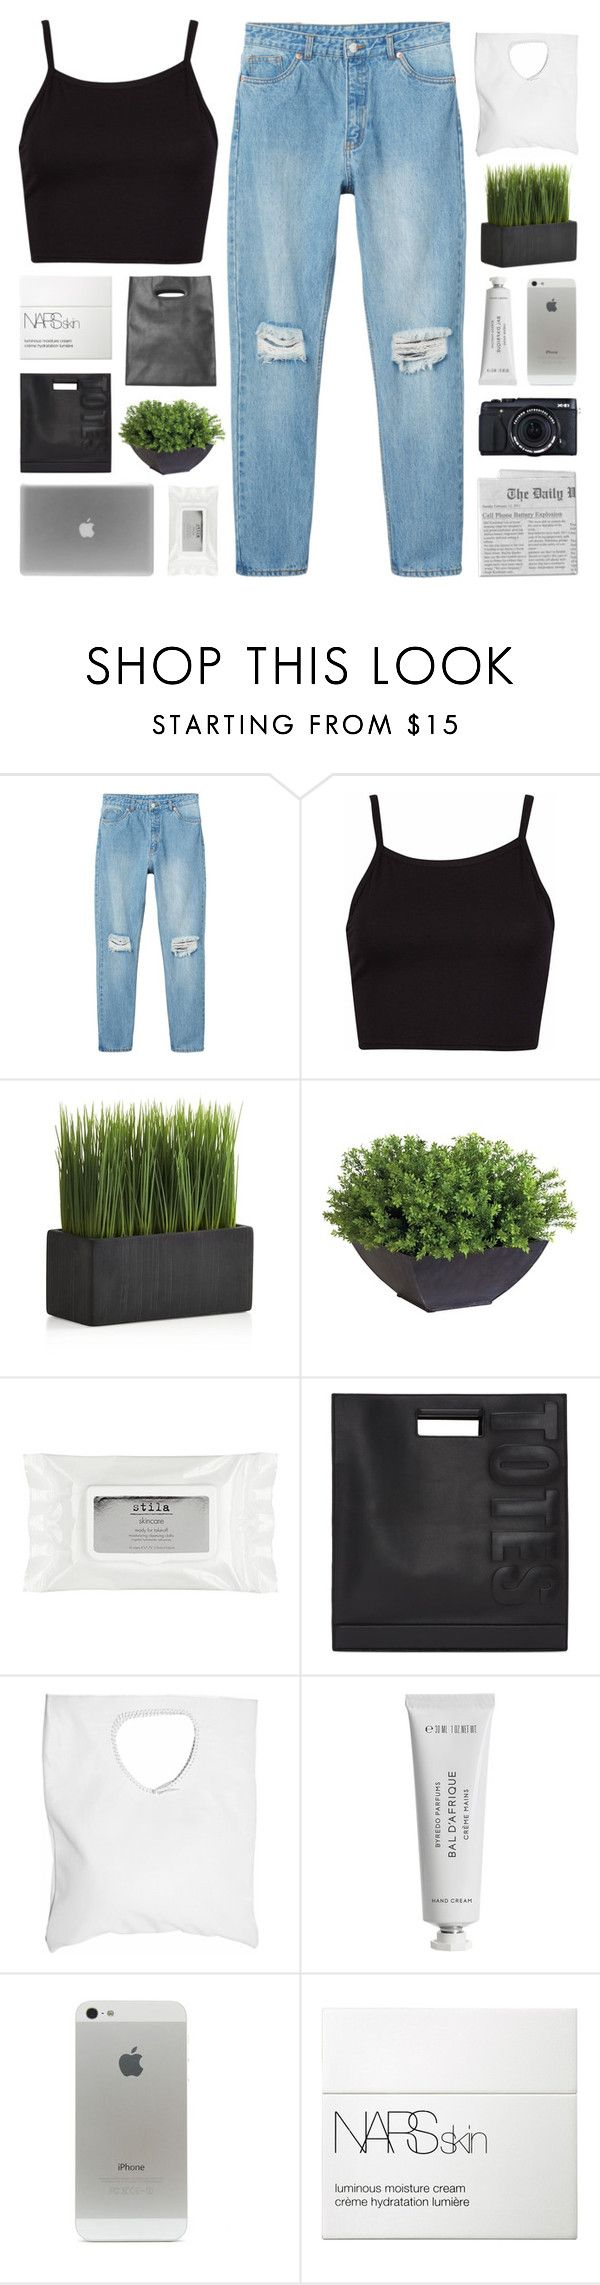 """""""-- 500,000 LIKES"""" by feels-like-snow-in-september ❤ liked on Polyvore featuring Monki, Crate and Barrel, Ethan Allen, Stila, Fujifilm, 3.1 Phillip Lim, Jennifer Haley, Byredo, NARS Cosmetics and snowinseptembertopsets"""